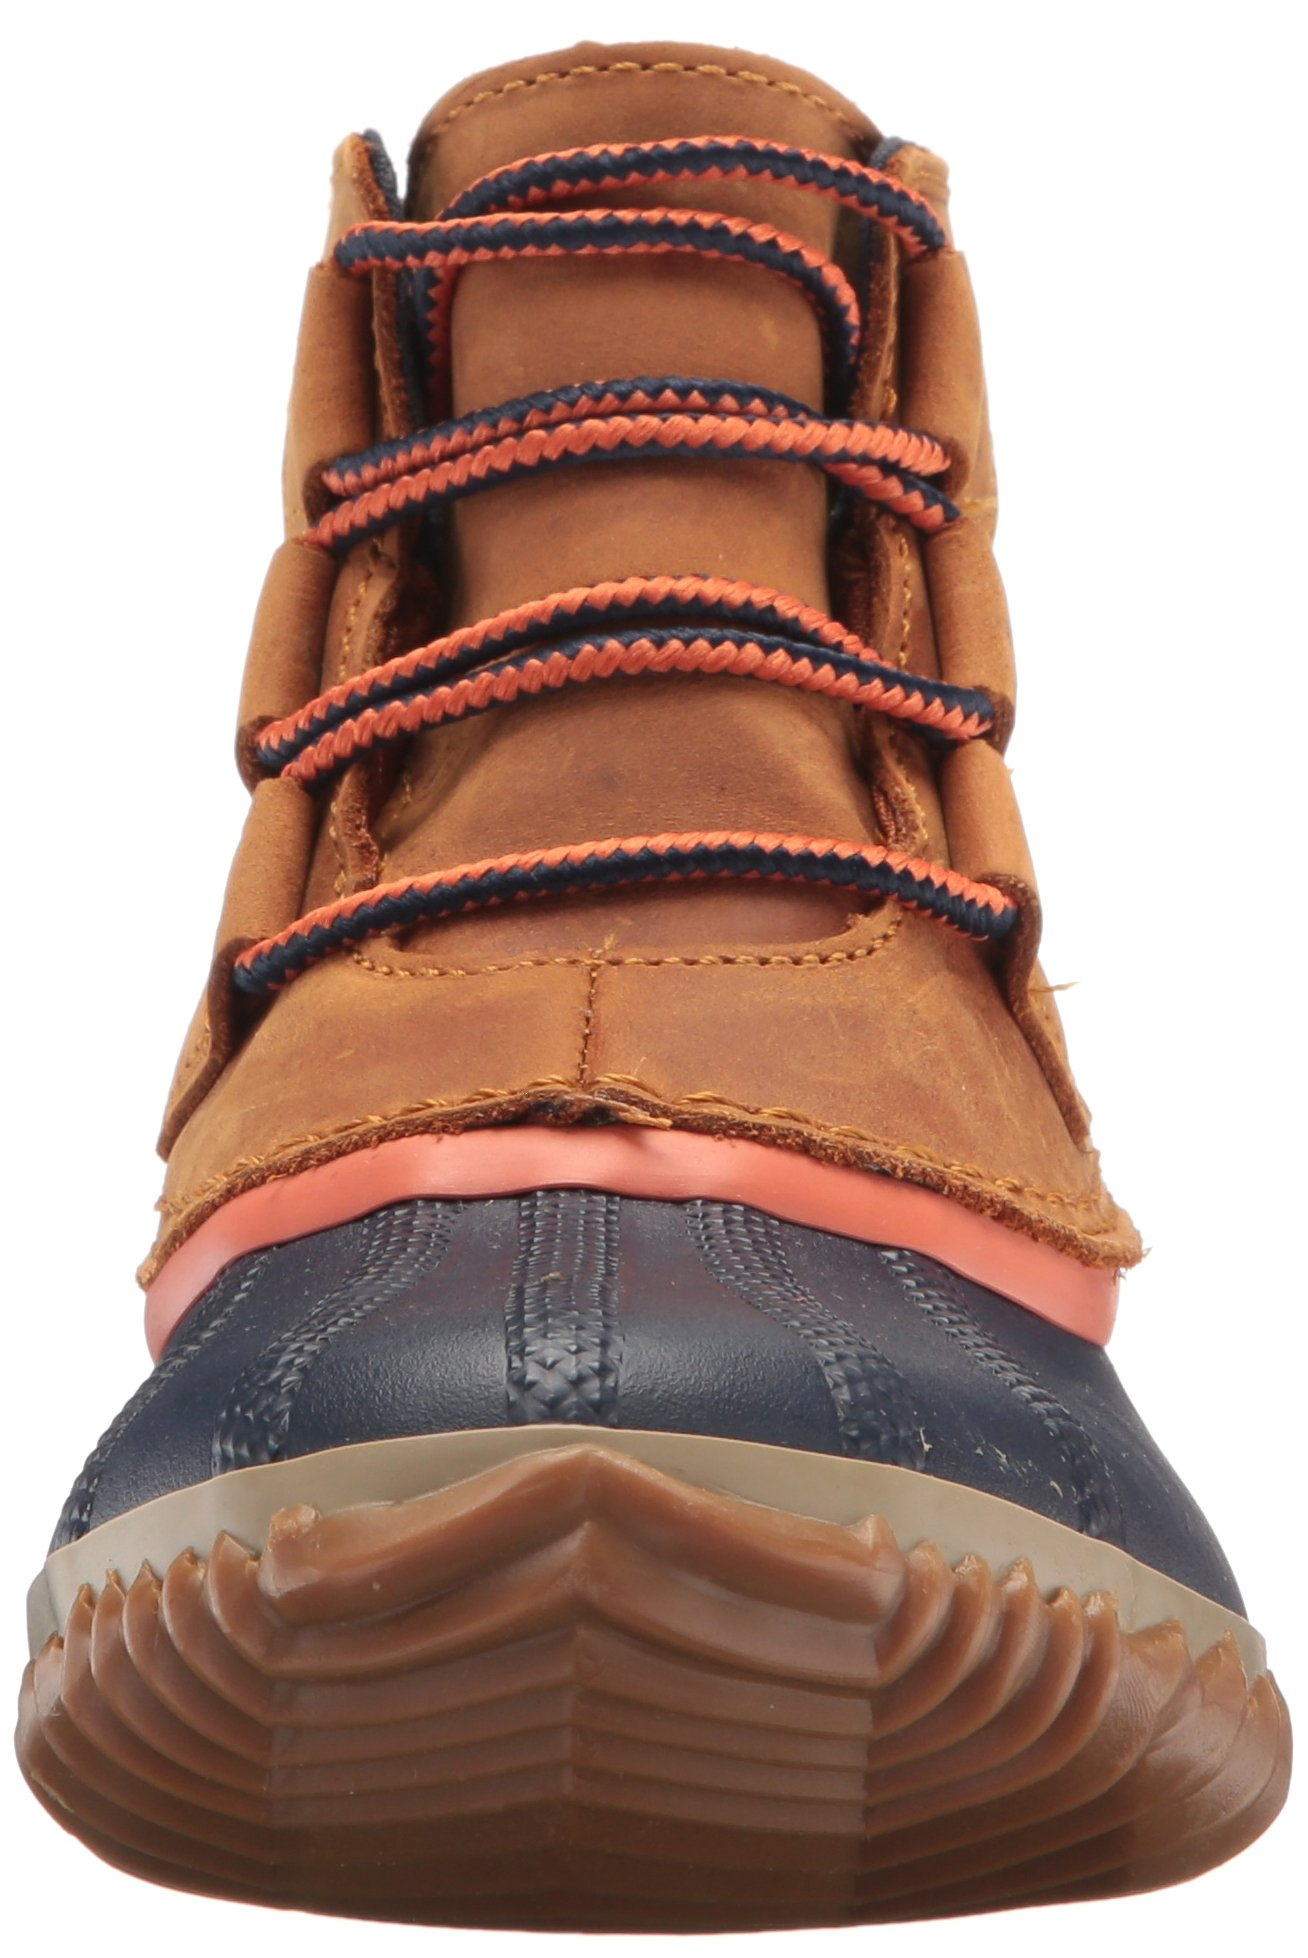 Sorel Women's Out N About Snow Boot, Brown, 6 B US by SOREL (Image #4)